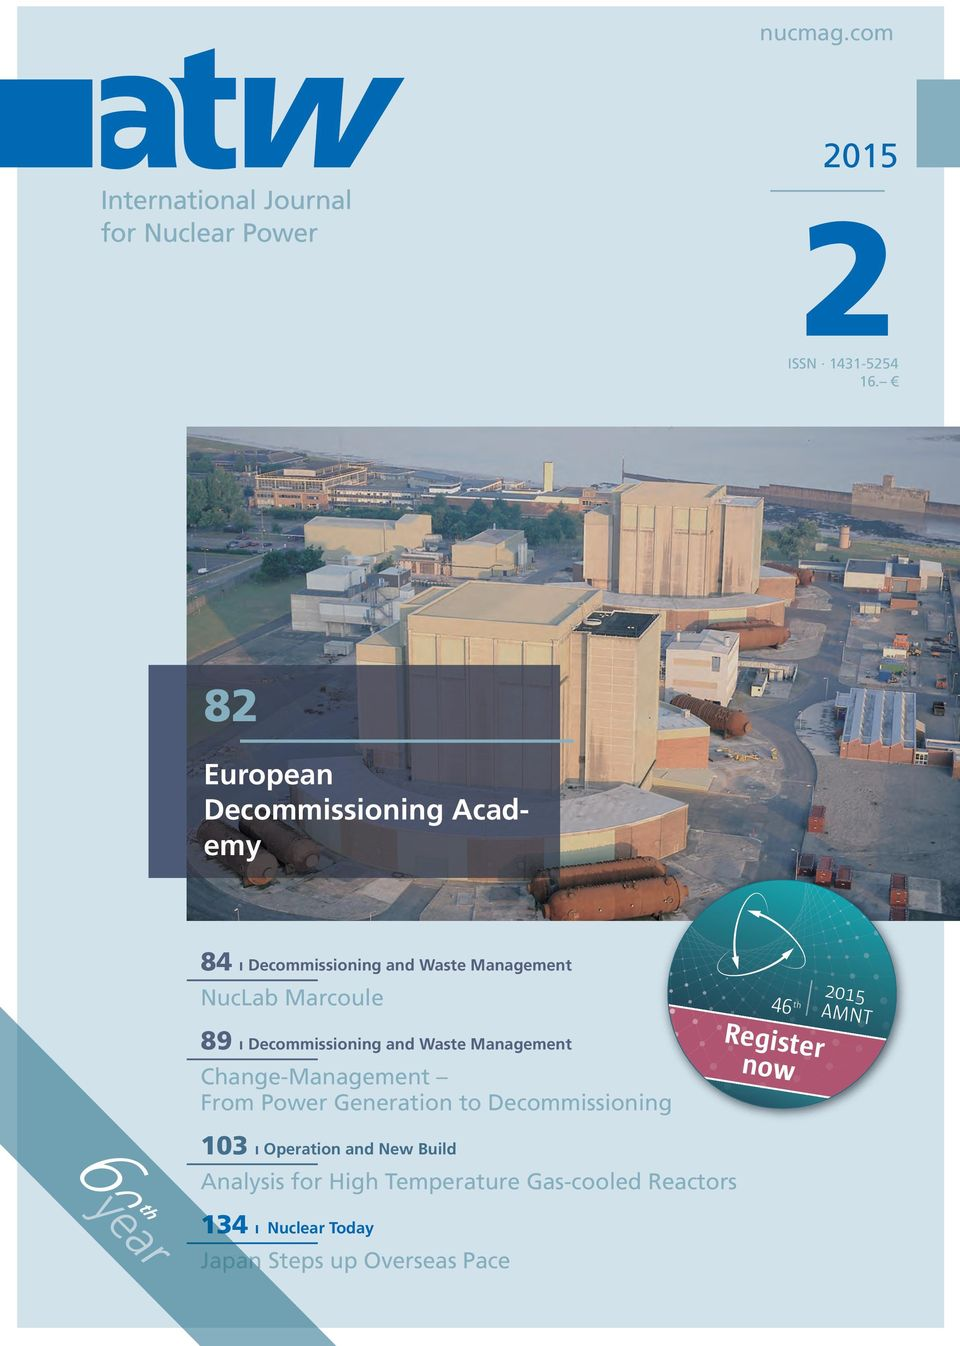 89 ı Decommissioning and Waste Management Change-Management From Power Generation to